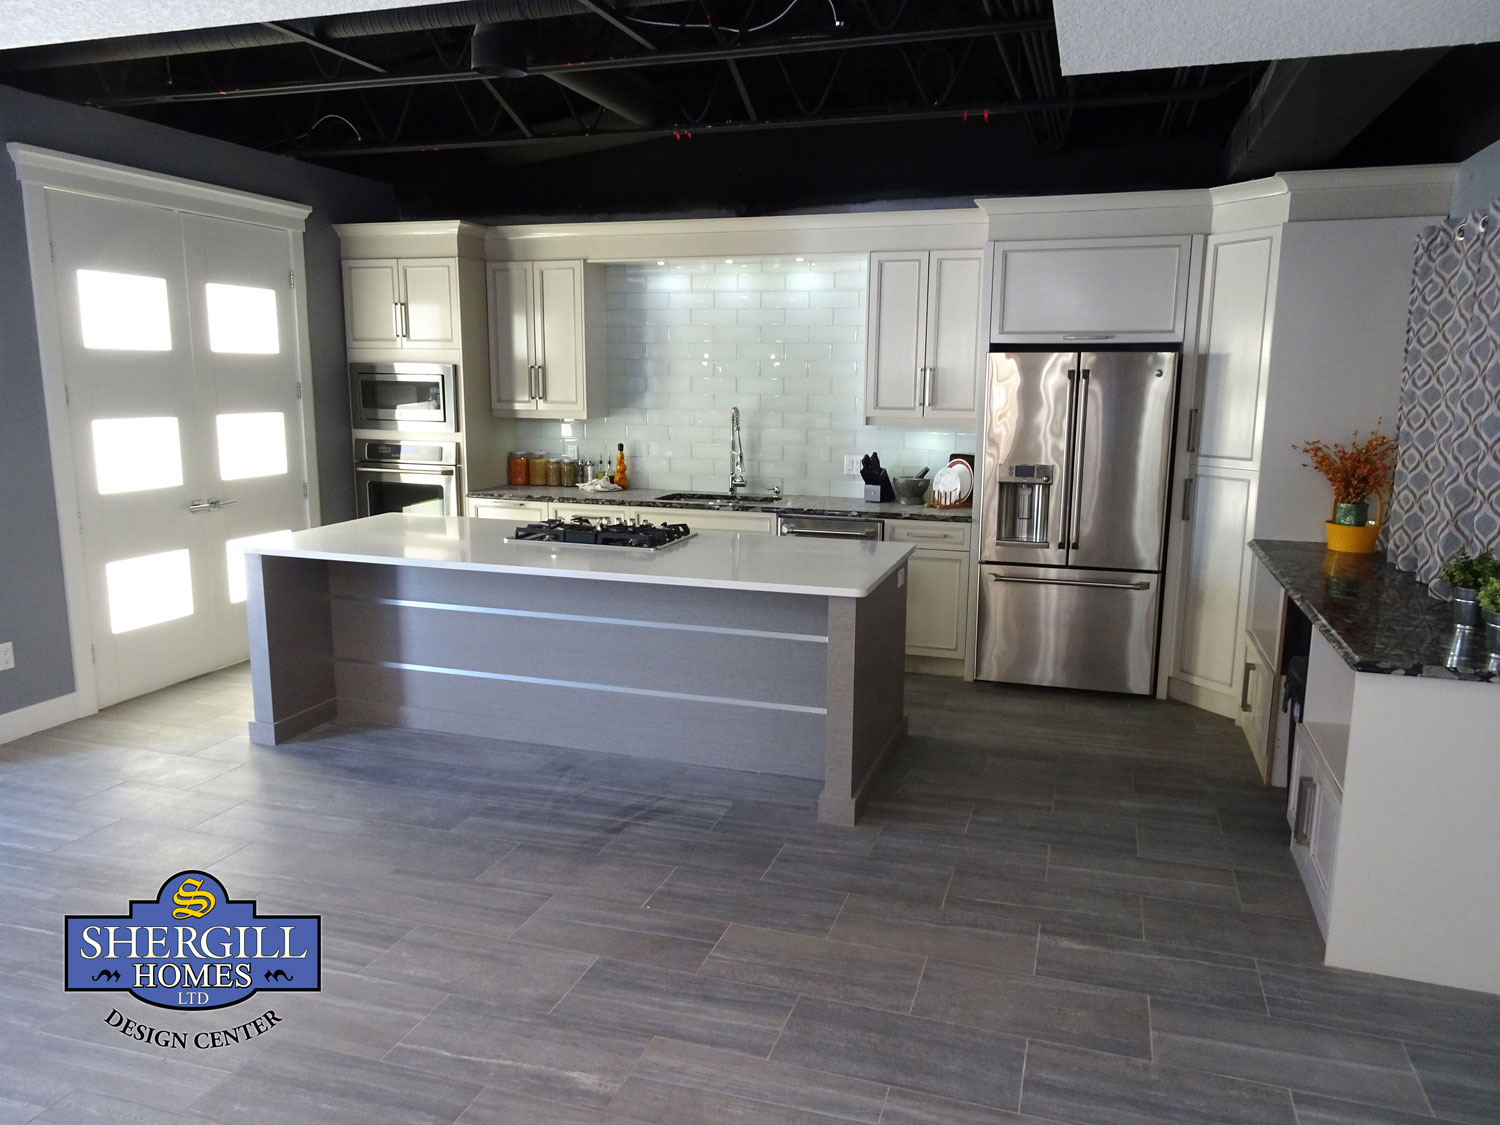 Shergill Homes Design Center - Kitchen Mock up (Fort McMurray Home Builders)